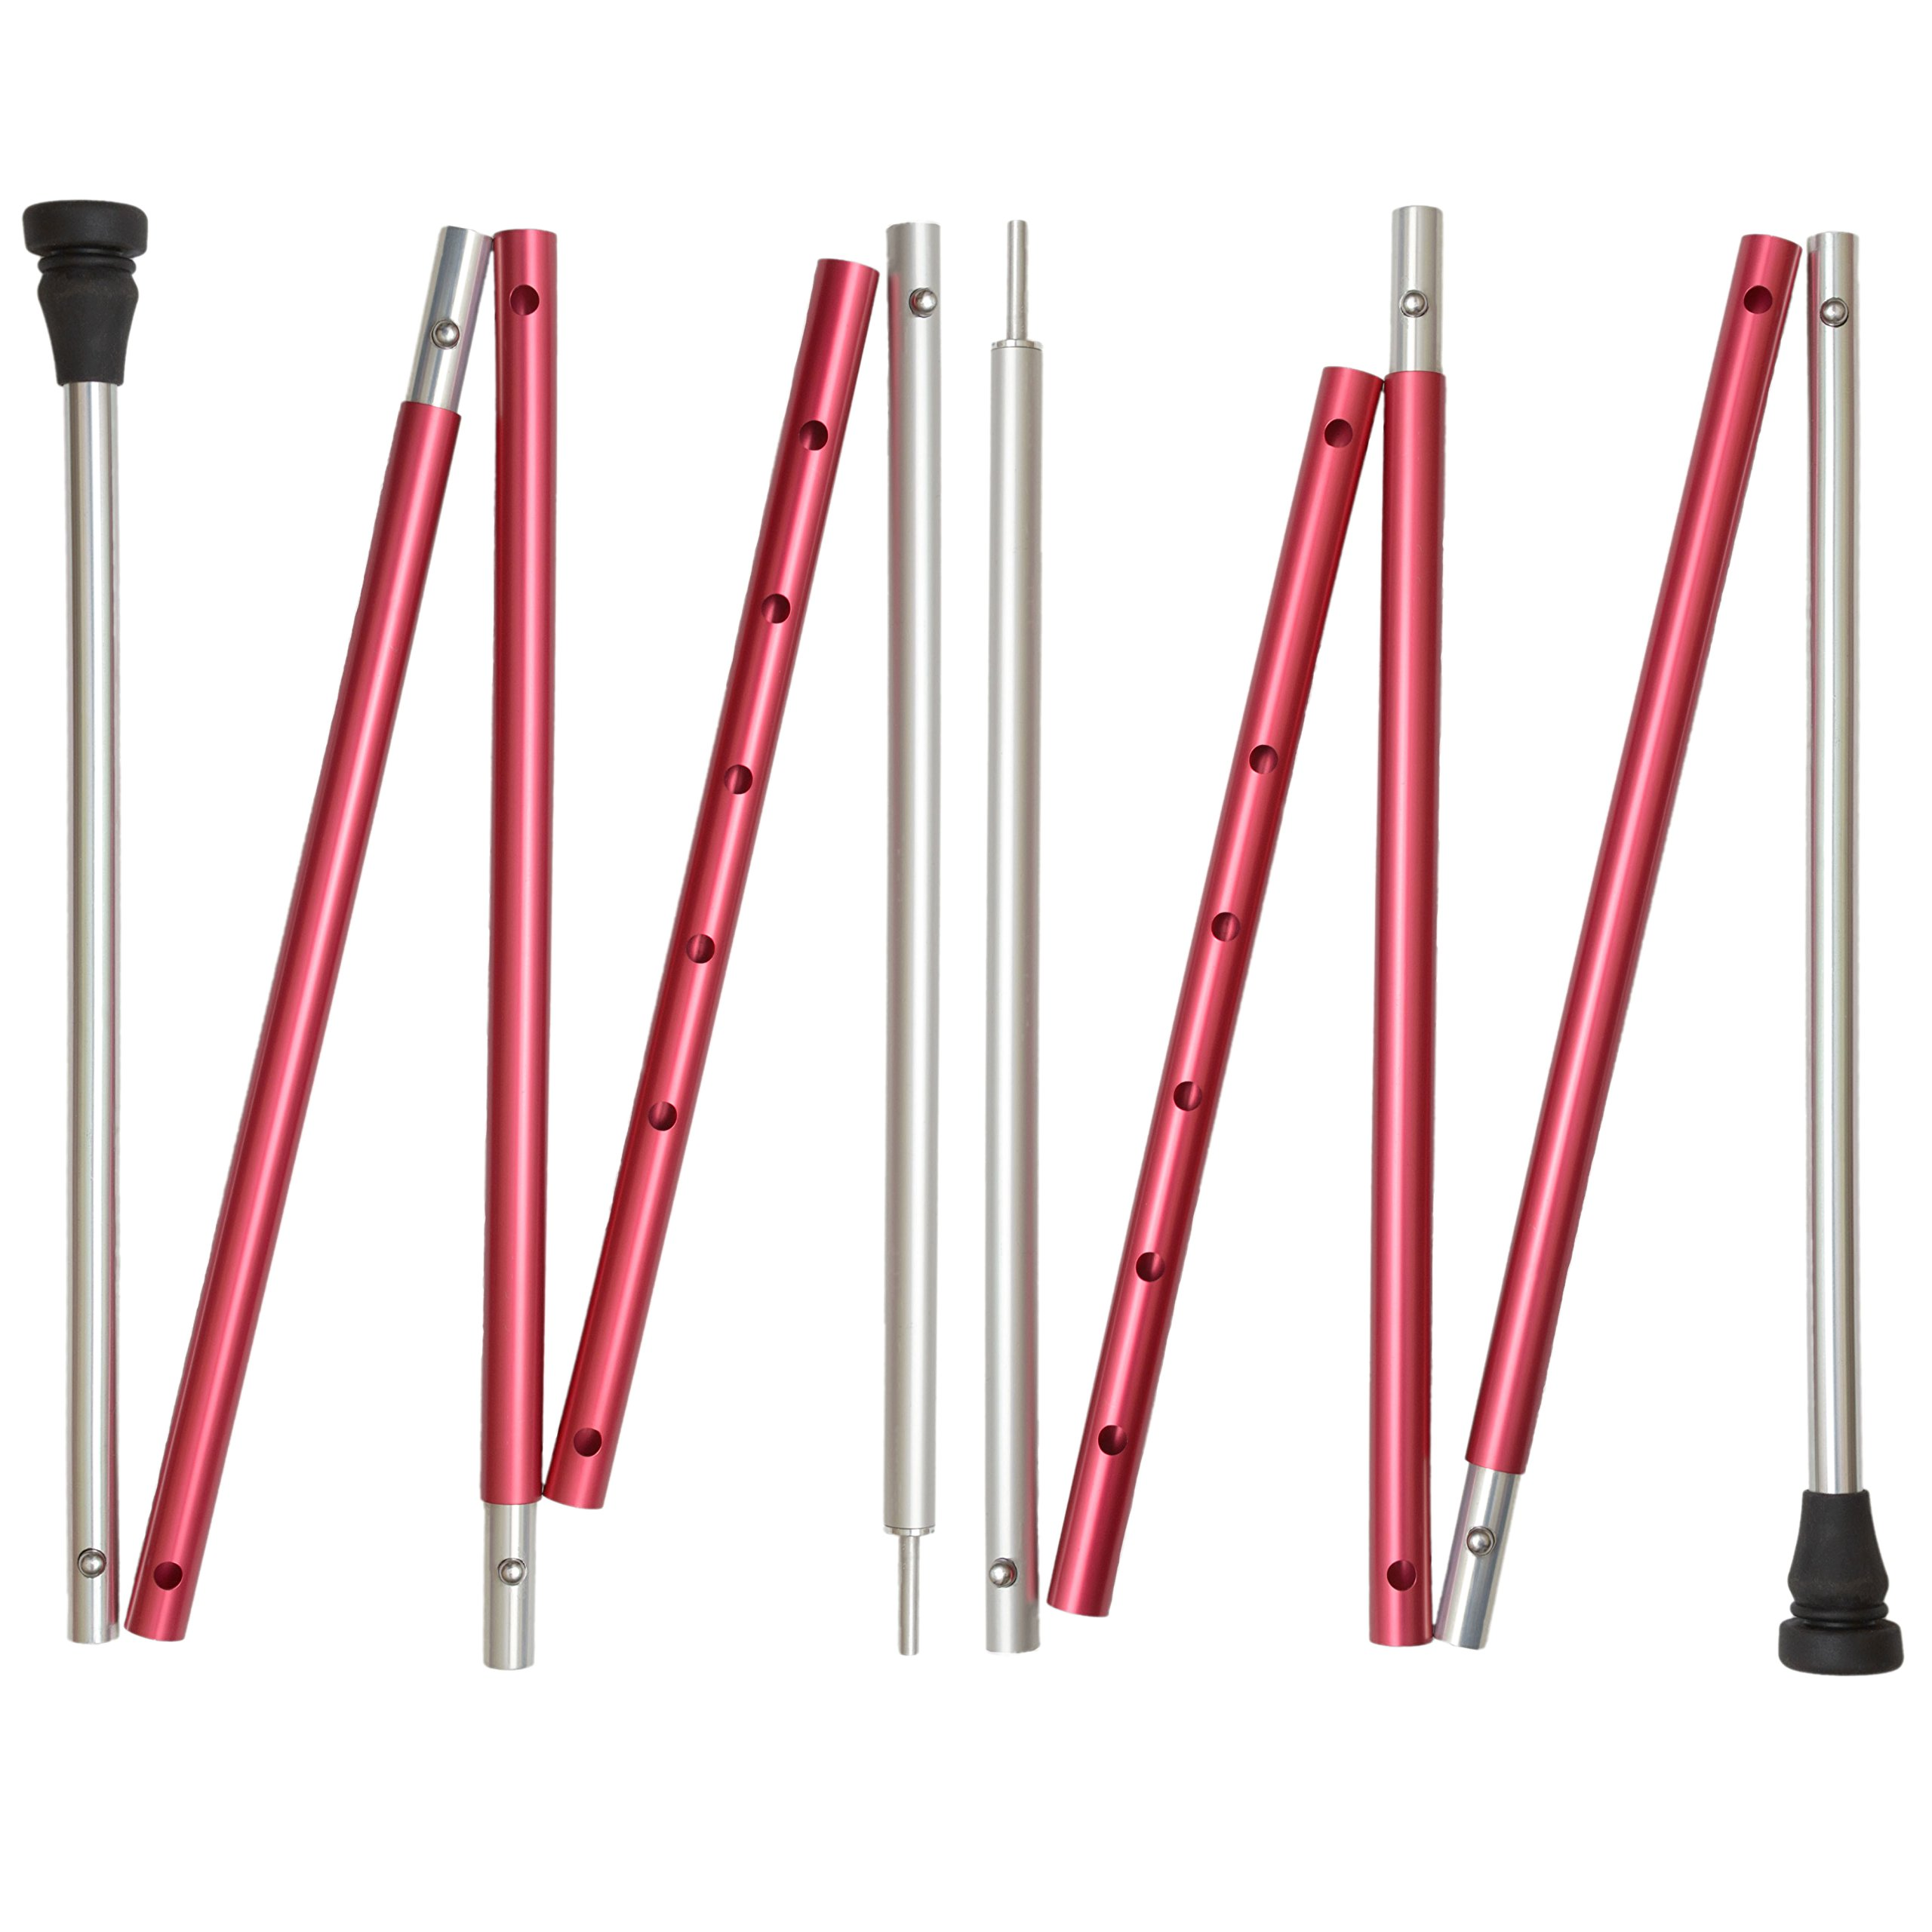 Paria Outdoor Products Adjustable Tarp and Tent Poles - Versatile, Durable, and Lightweight - Perfect for Camping, Backpacking, Hammocks, Shelters, and Awnings by Paria Outdoor Products